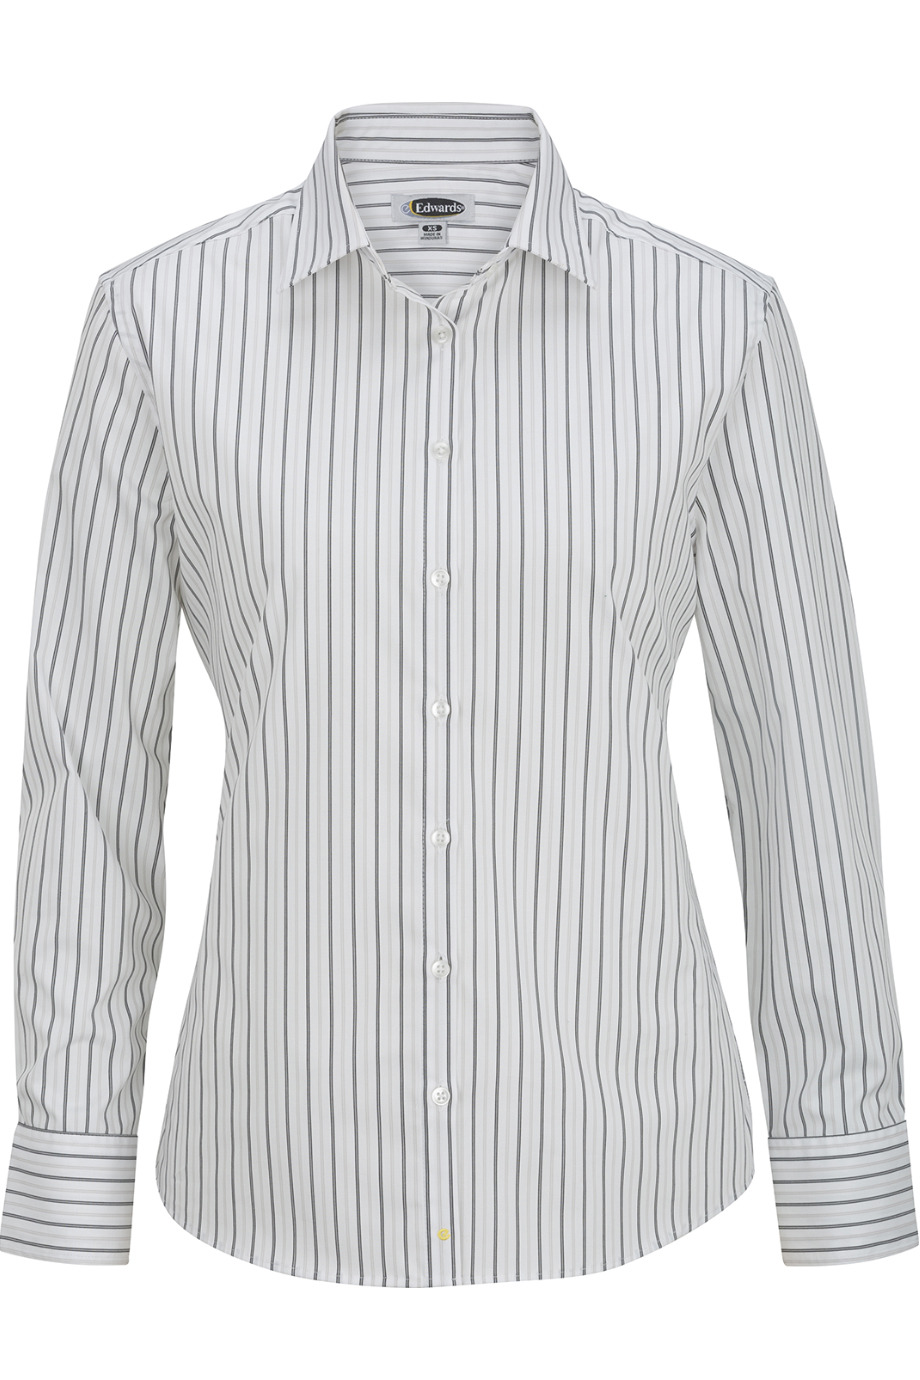 Edwards Garment 5983 - Ladies' Double Stripe Poplin